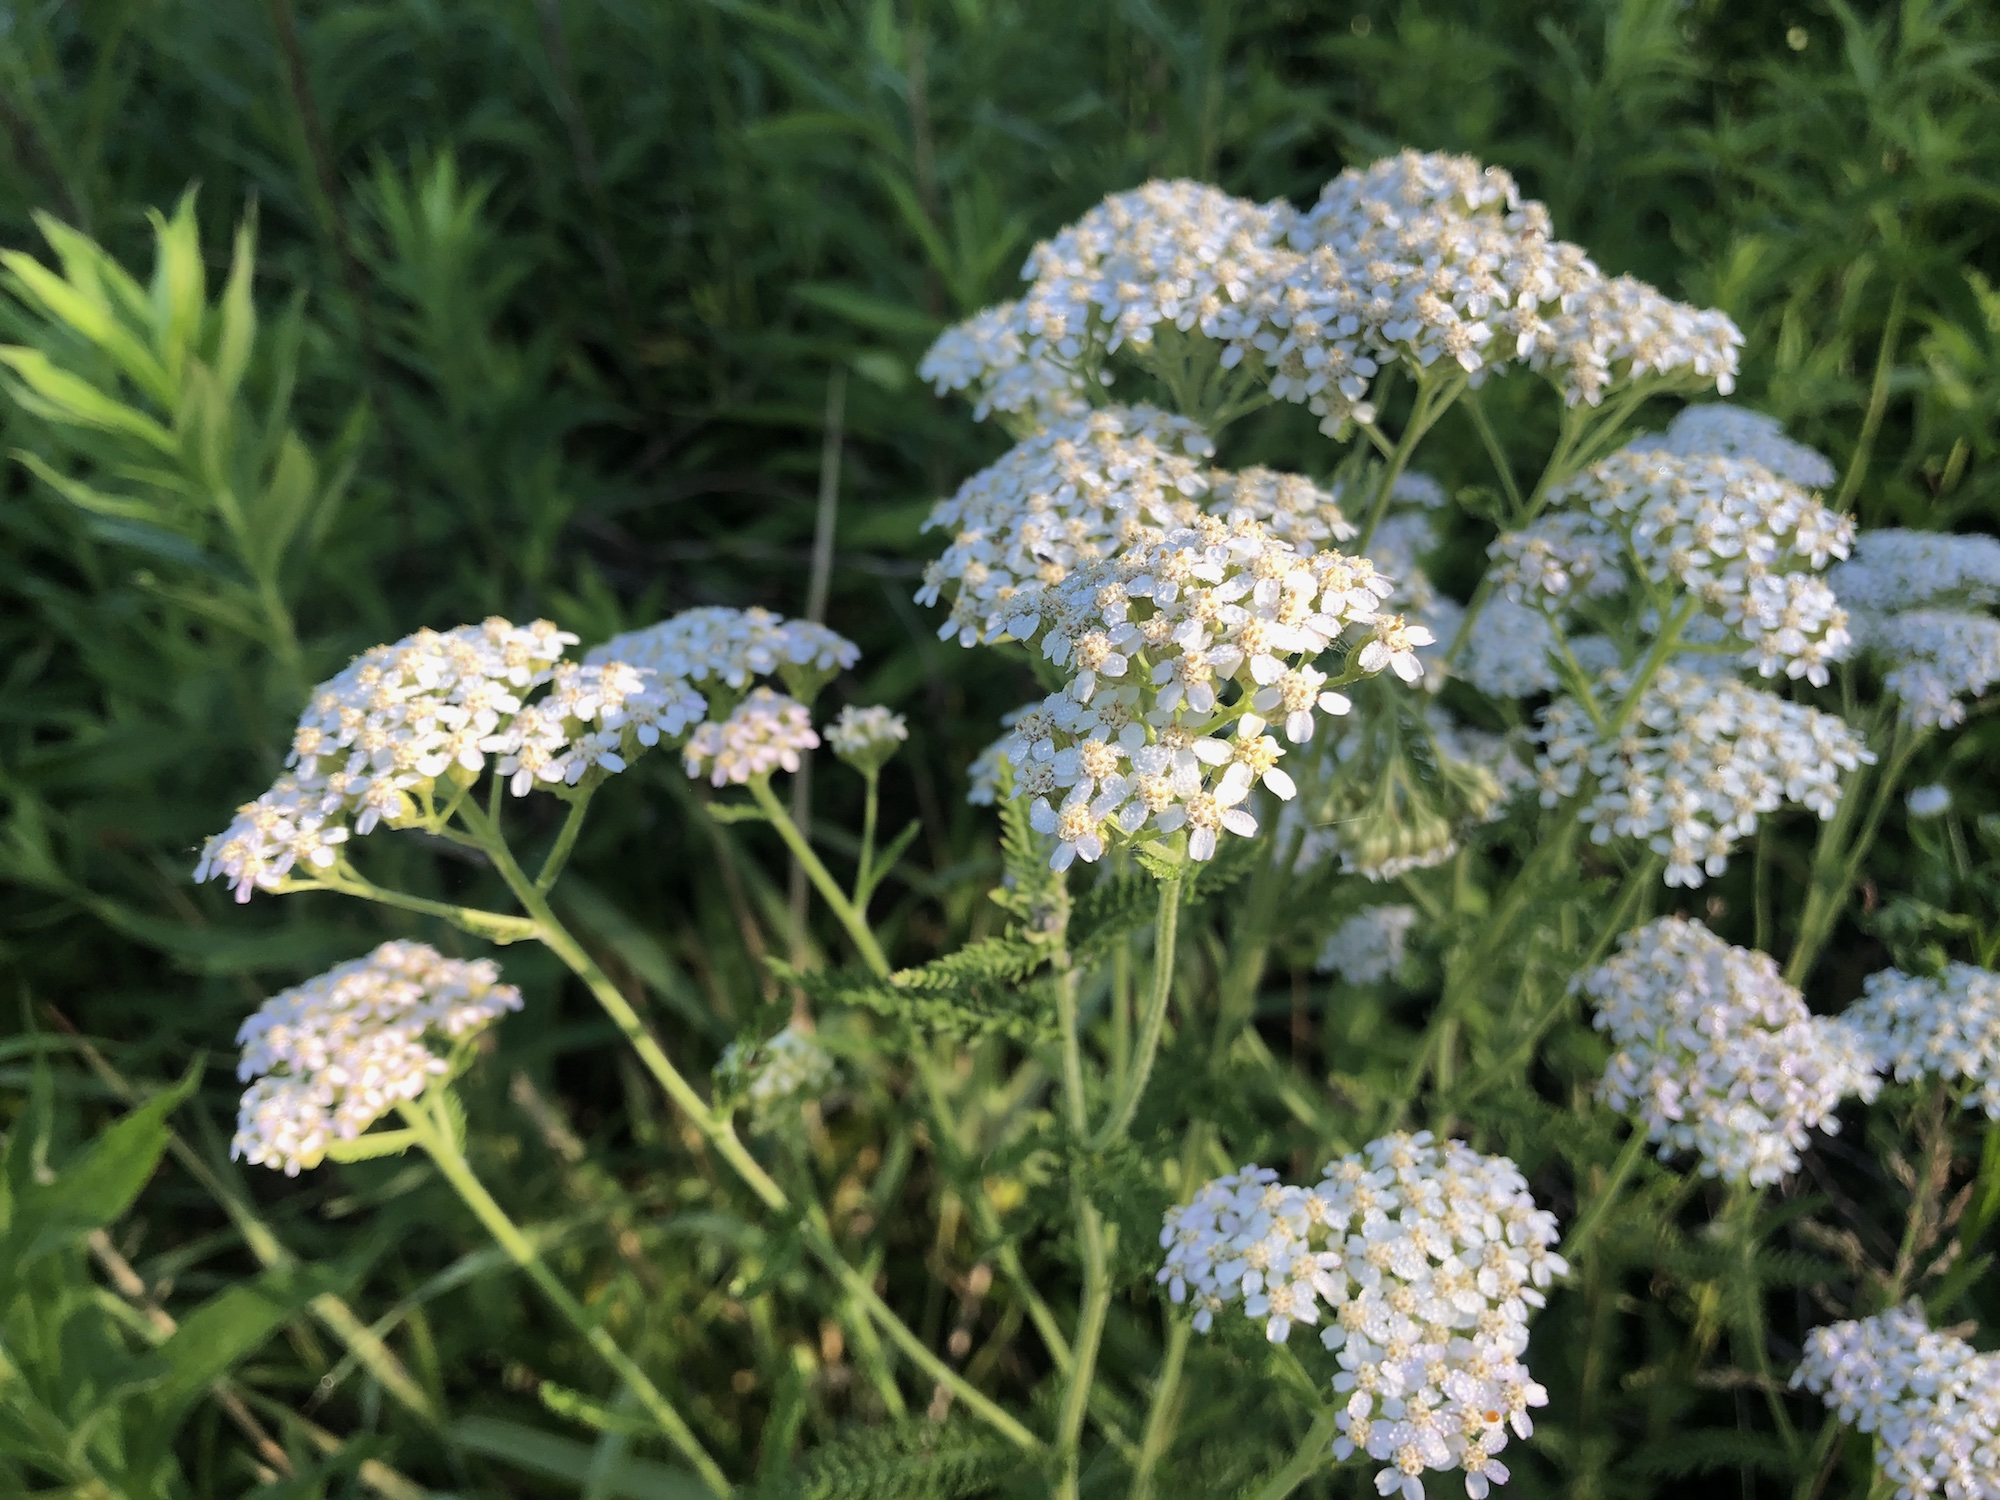 Common Yarrow on shore of Marion Dunn Pond on June 17, 2020.